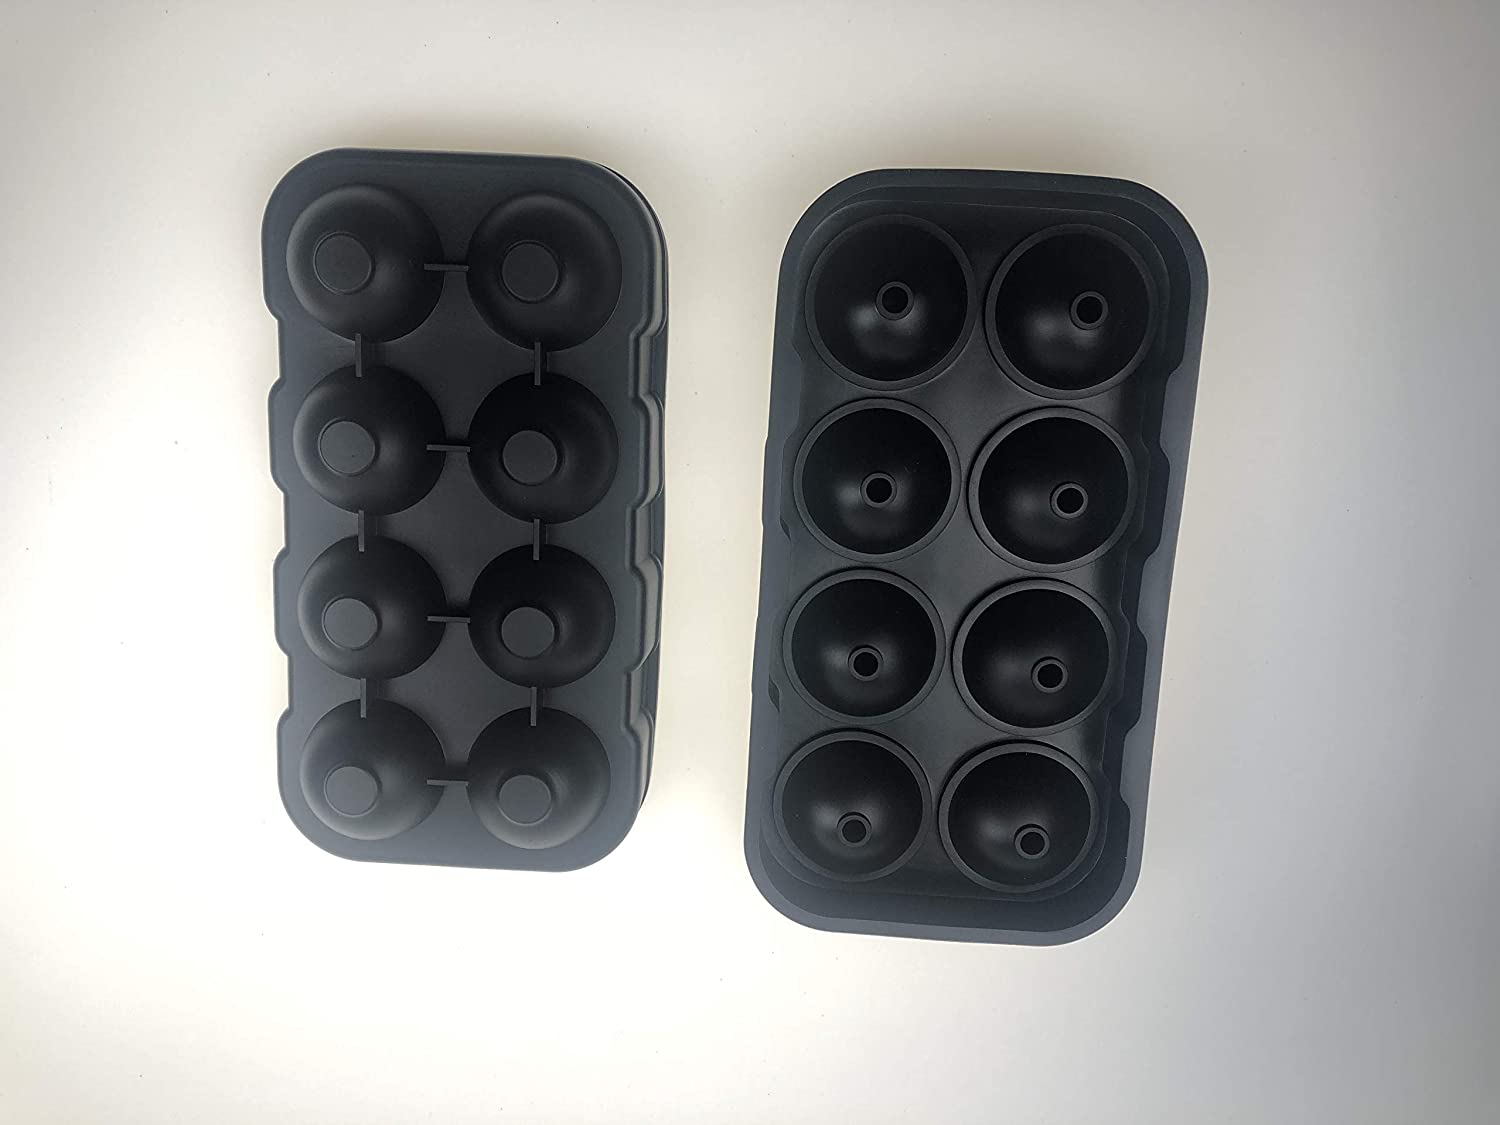 Silicone Ice Cube Trays Combo Round Ice Ball Spheres Ice Cube Tray Mold (6 Round Ice Ball Black): Kitchen & Dining